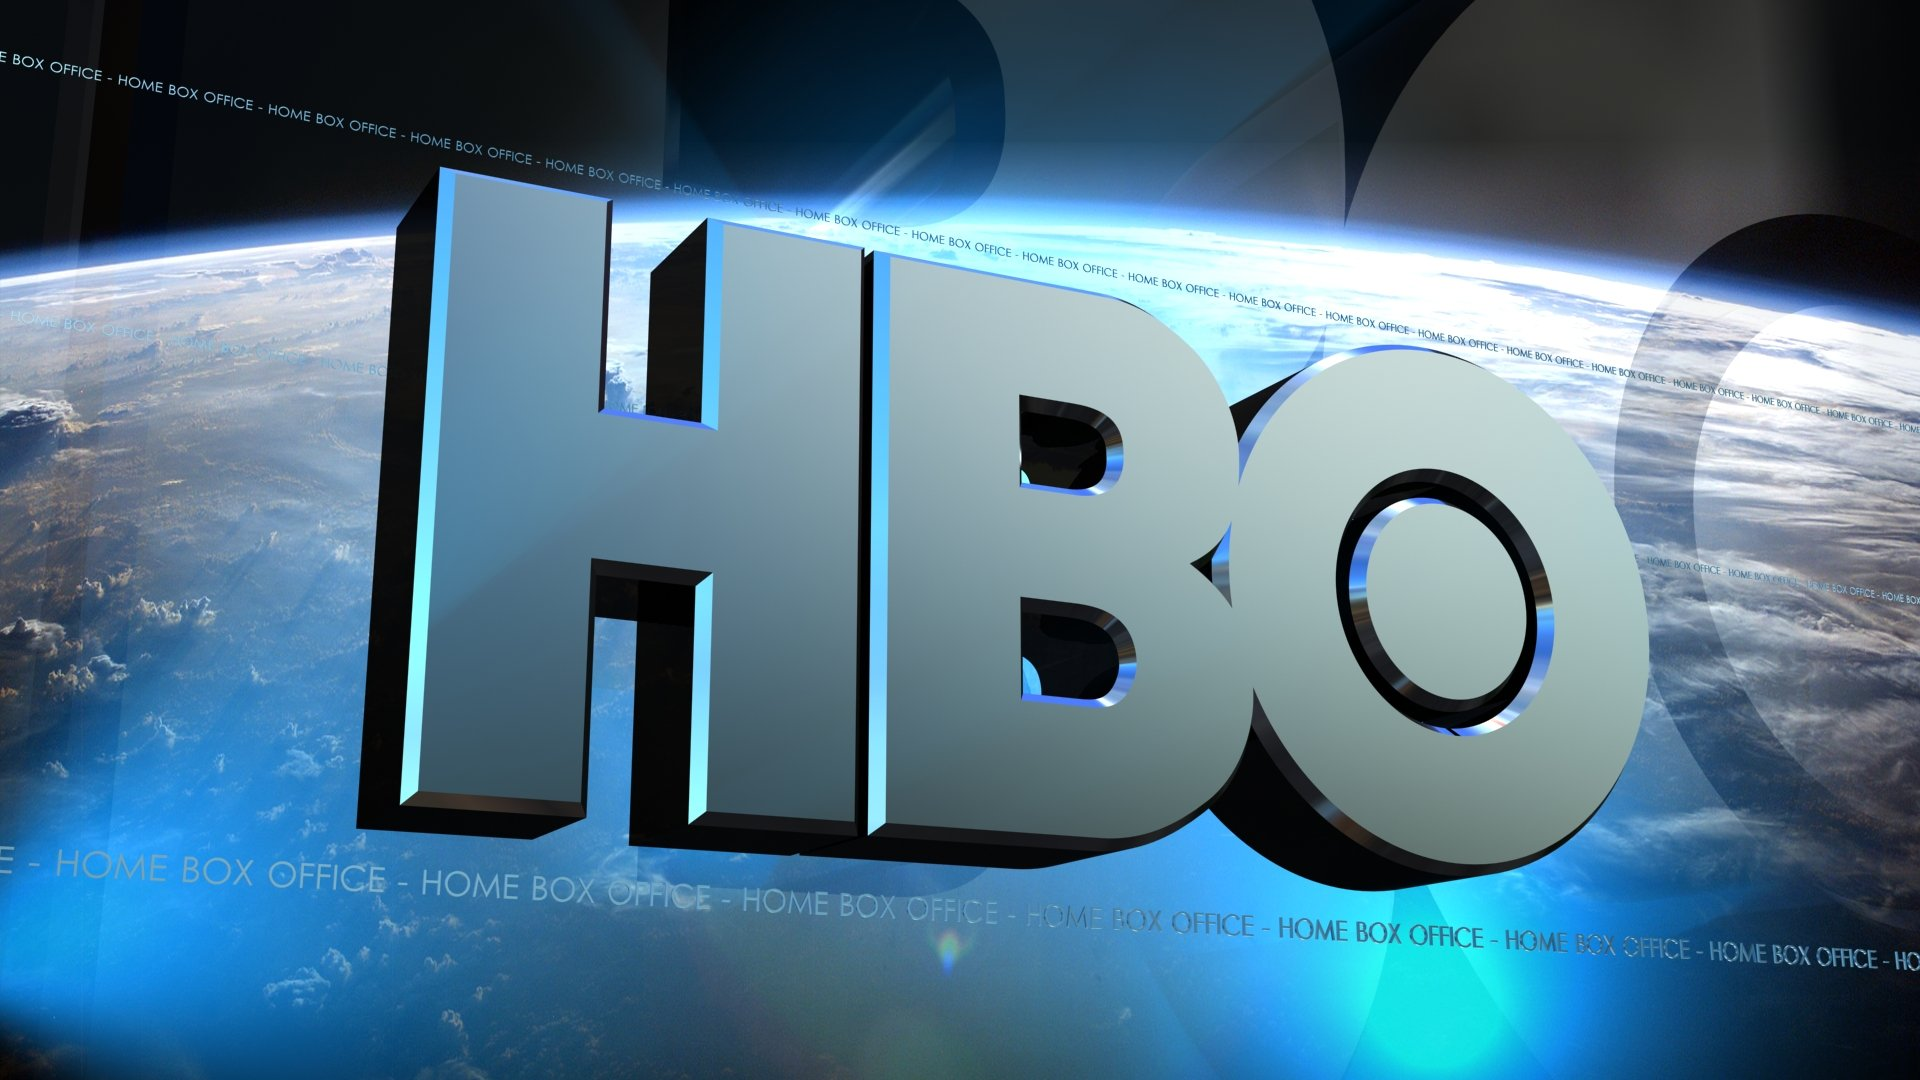 https://www.themarysue.com/wp-content/uploads/2015/03/HBO_Logo.jpg